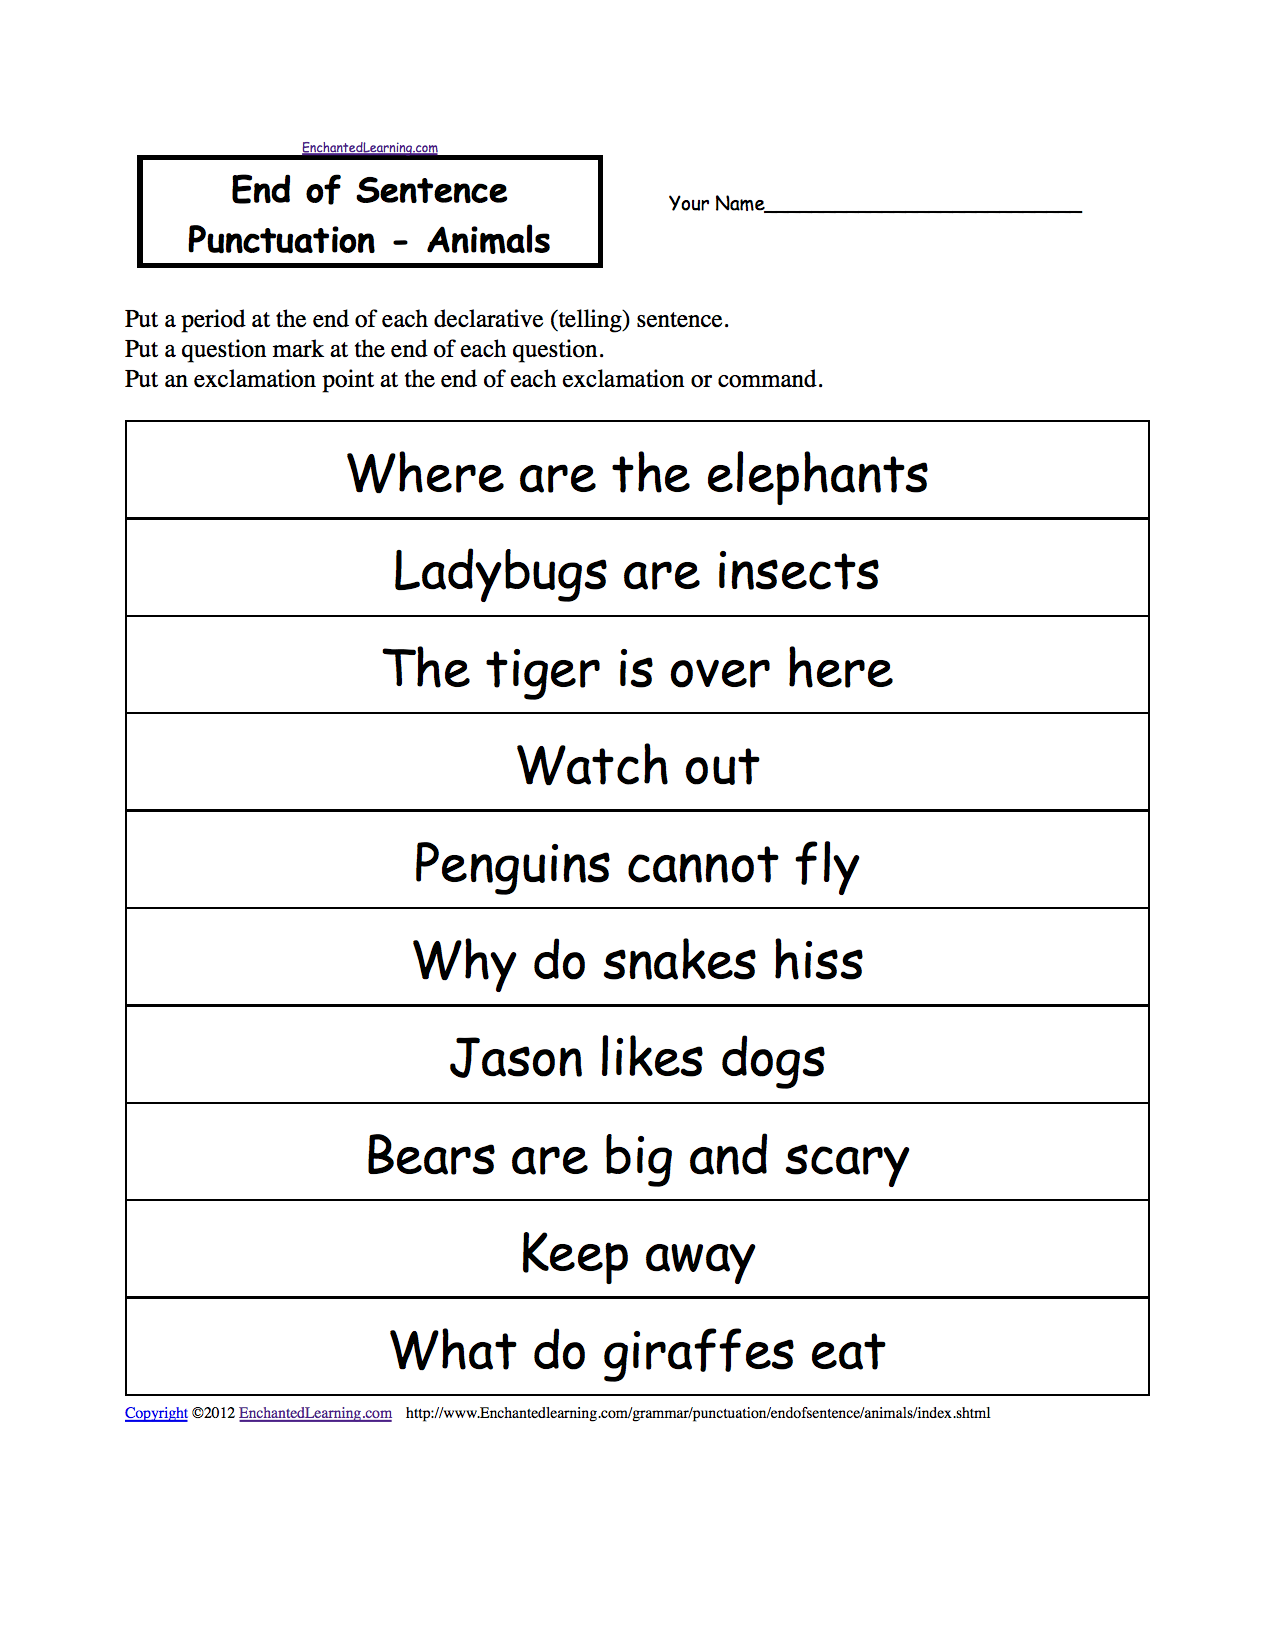 Free Worksheet Ending Punctuation Worksheets end of sentence punctuation printable worksheets animals